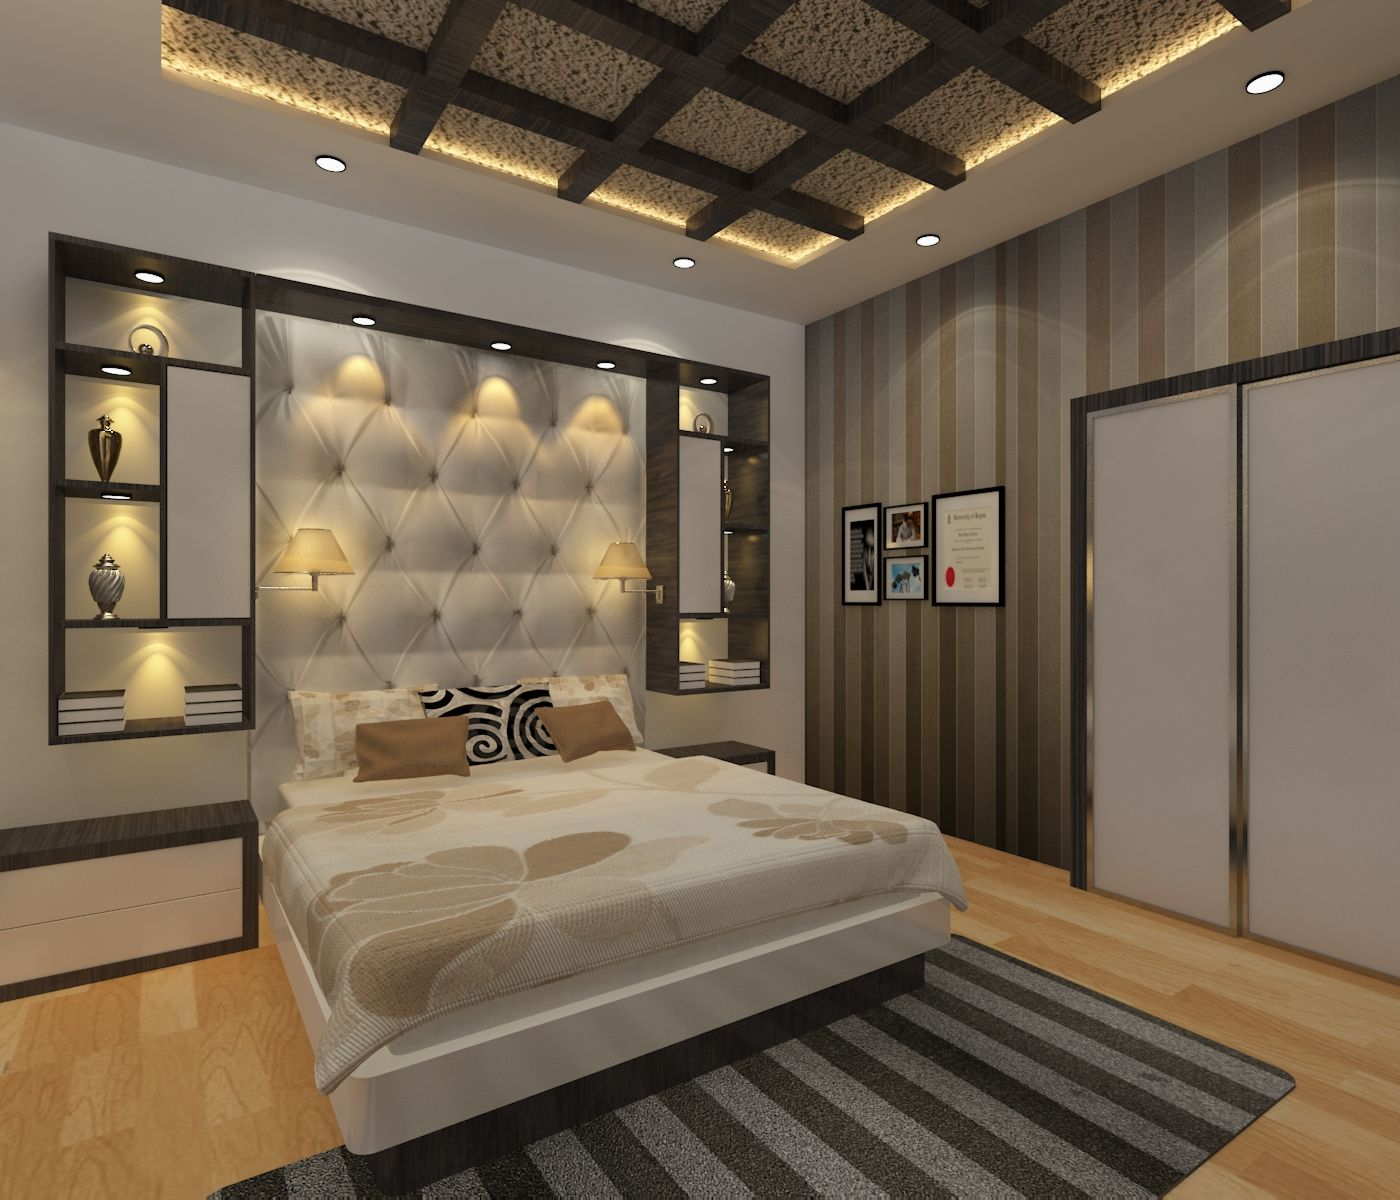 Modern Interior Decoration Living Rooms Ceiling Designs: Luxury Bedroom With Elements Bedroom , Bed, Cover, Ceiling